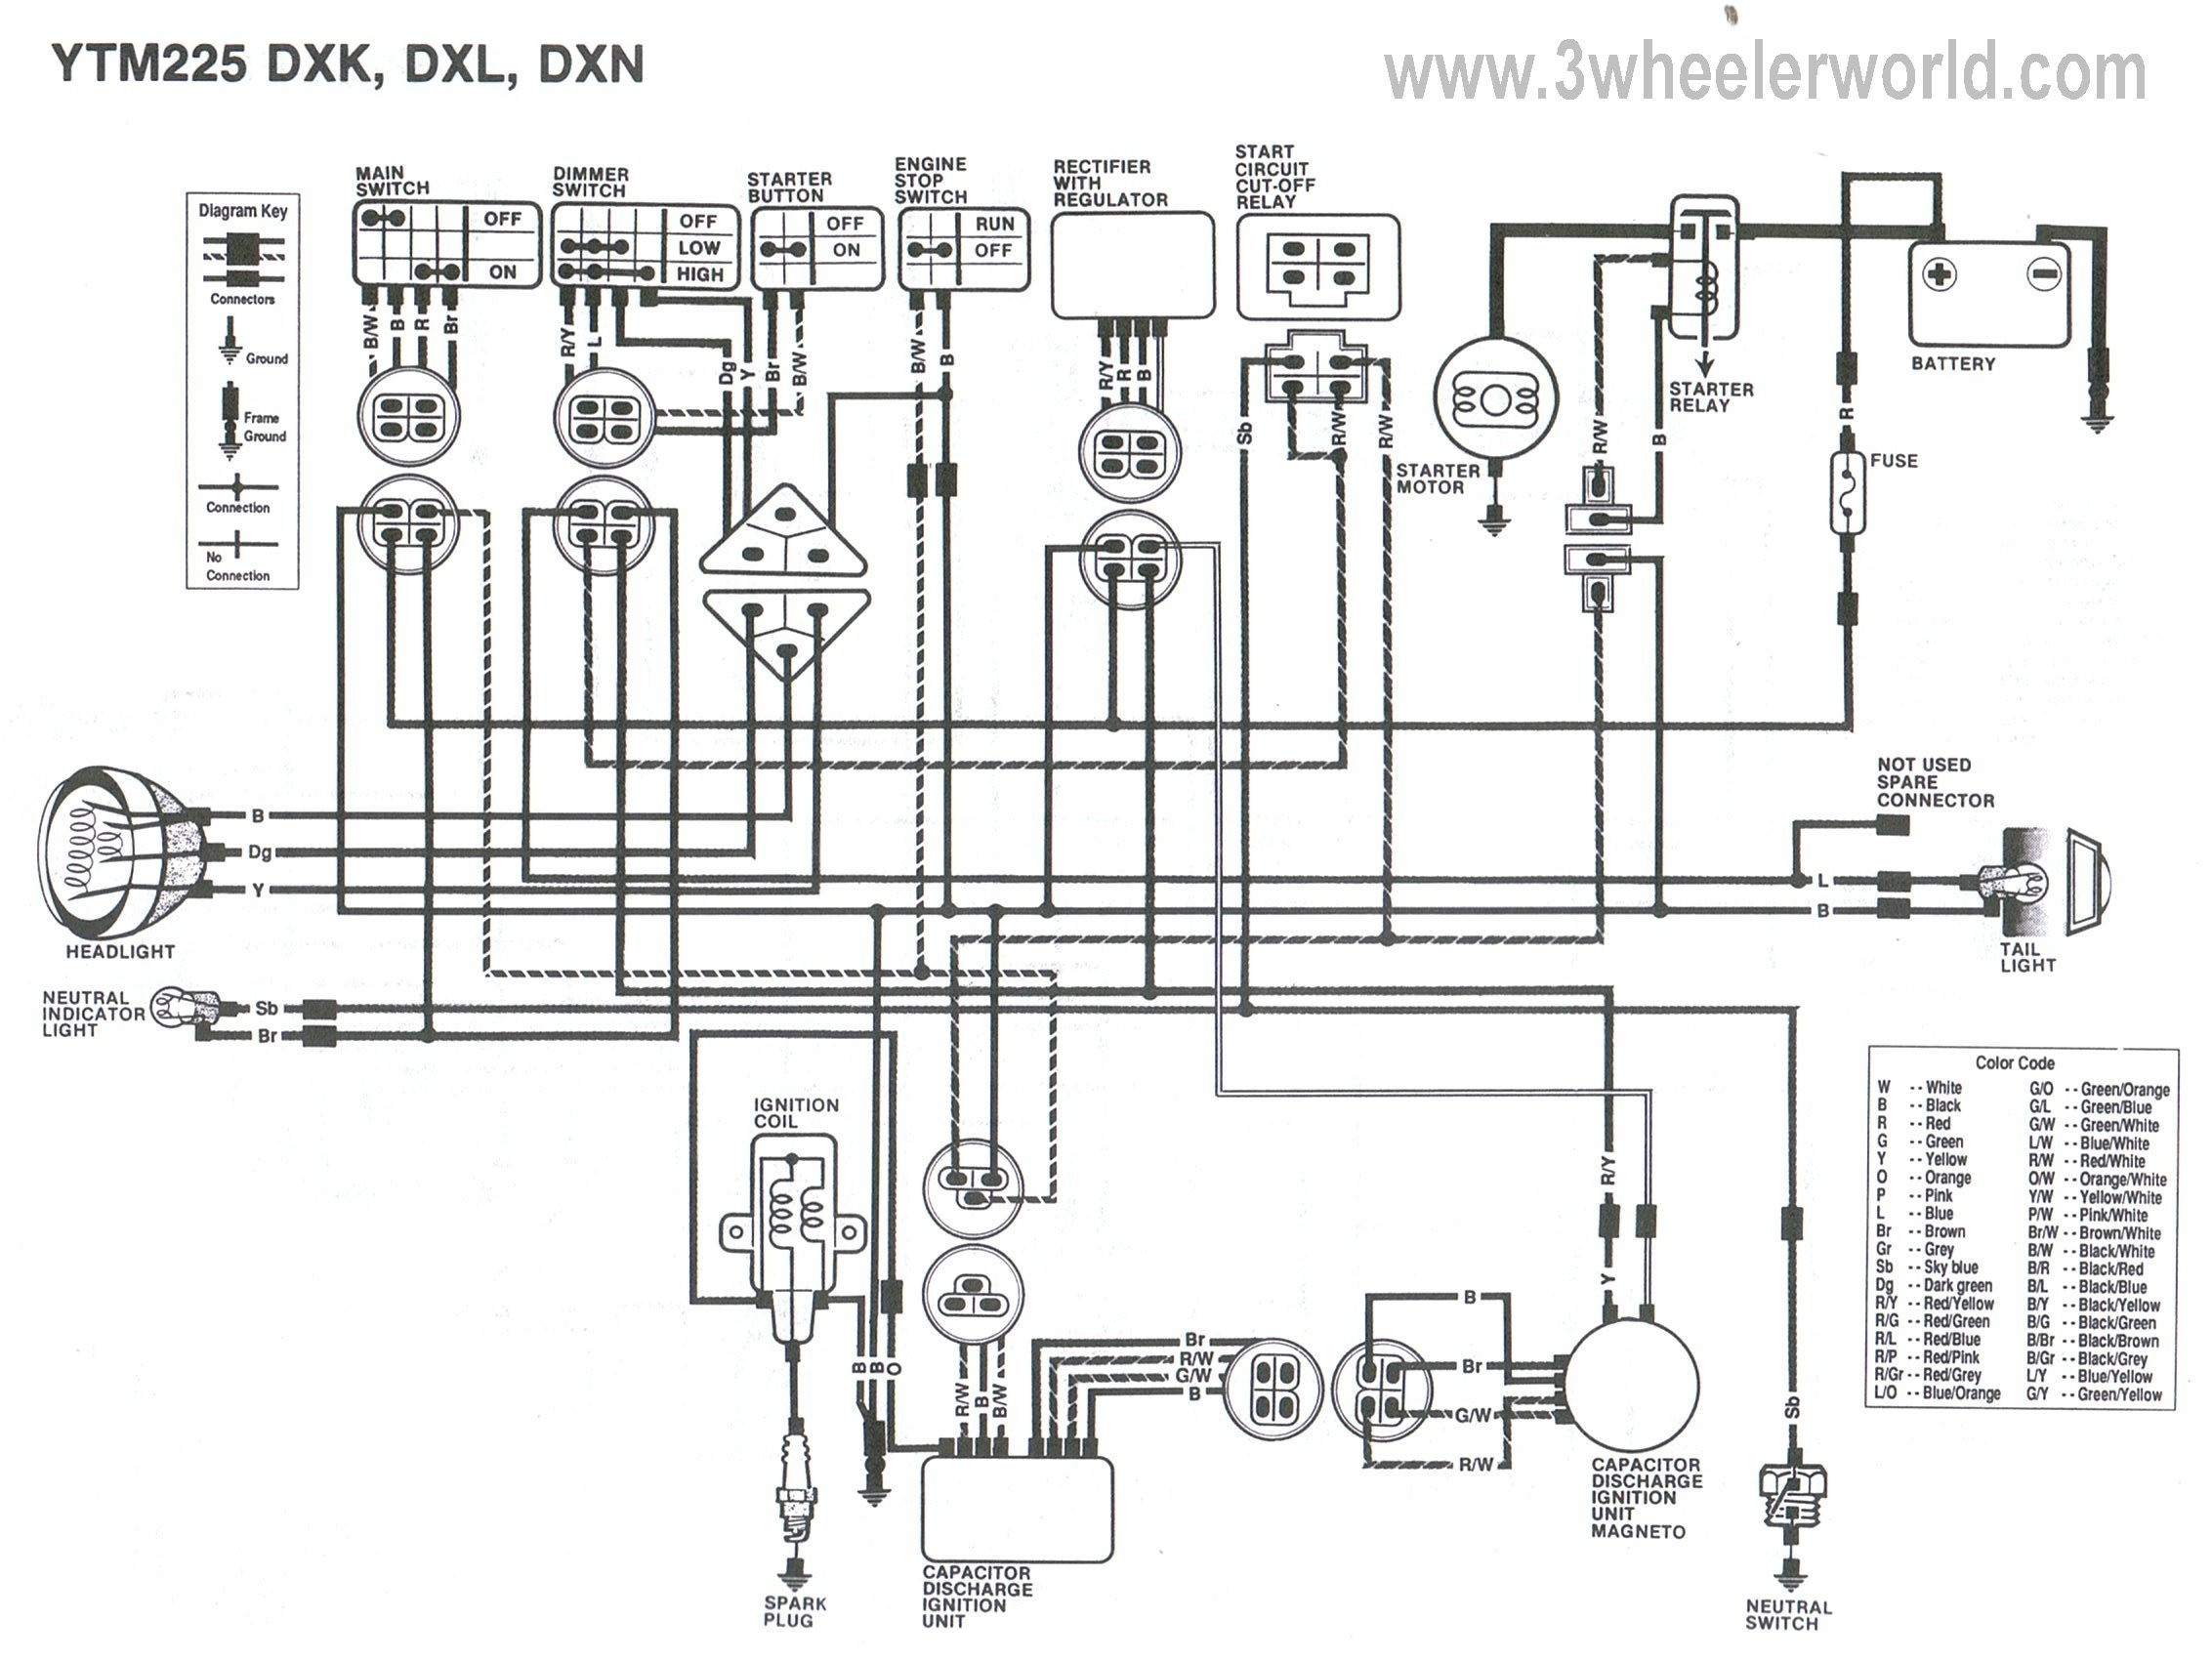 xsvi 6502 nav wiring diagram Collection-Wiring Diagram Pics Detail Name xsvi 6502 nav wiring diagram 19-i